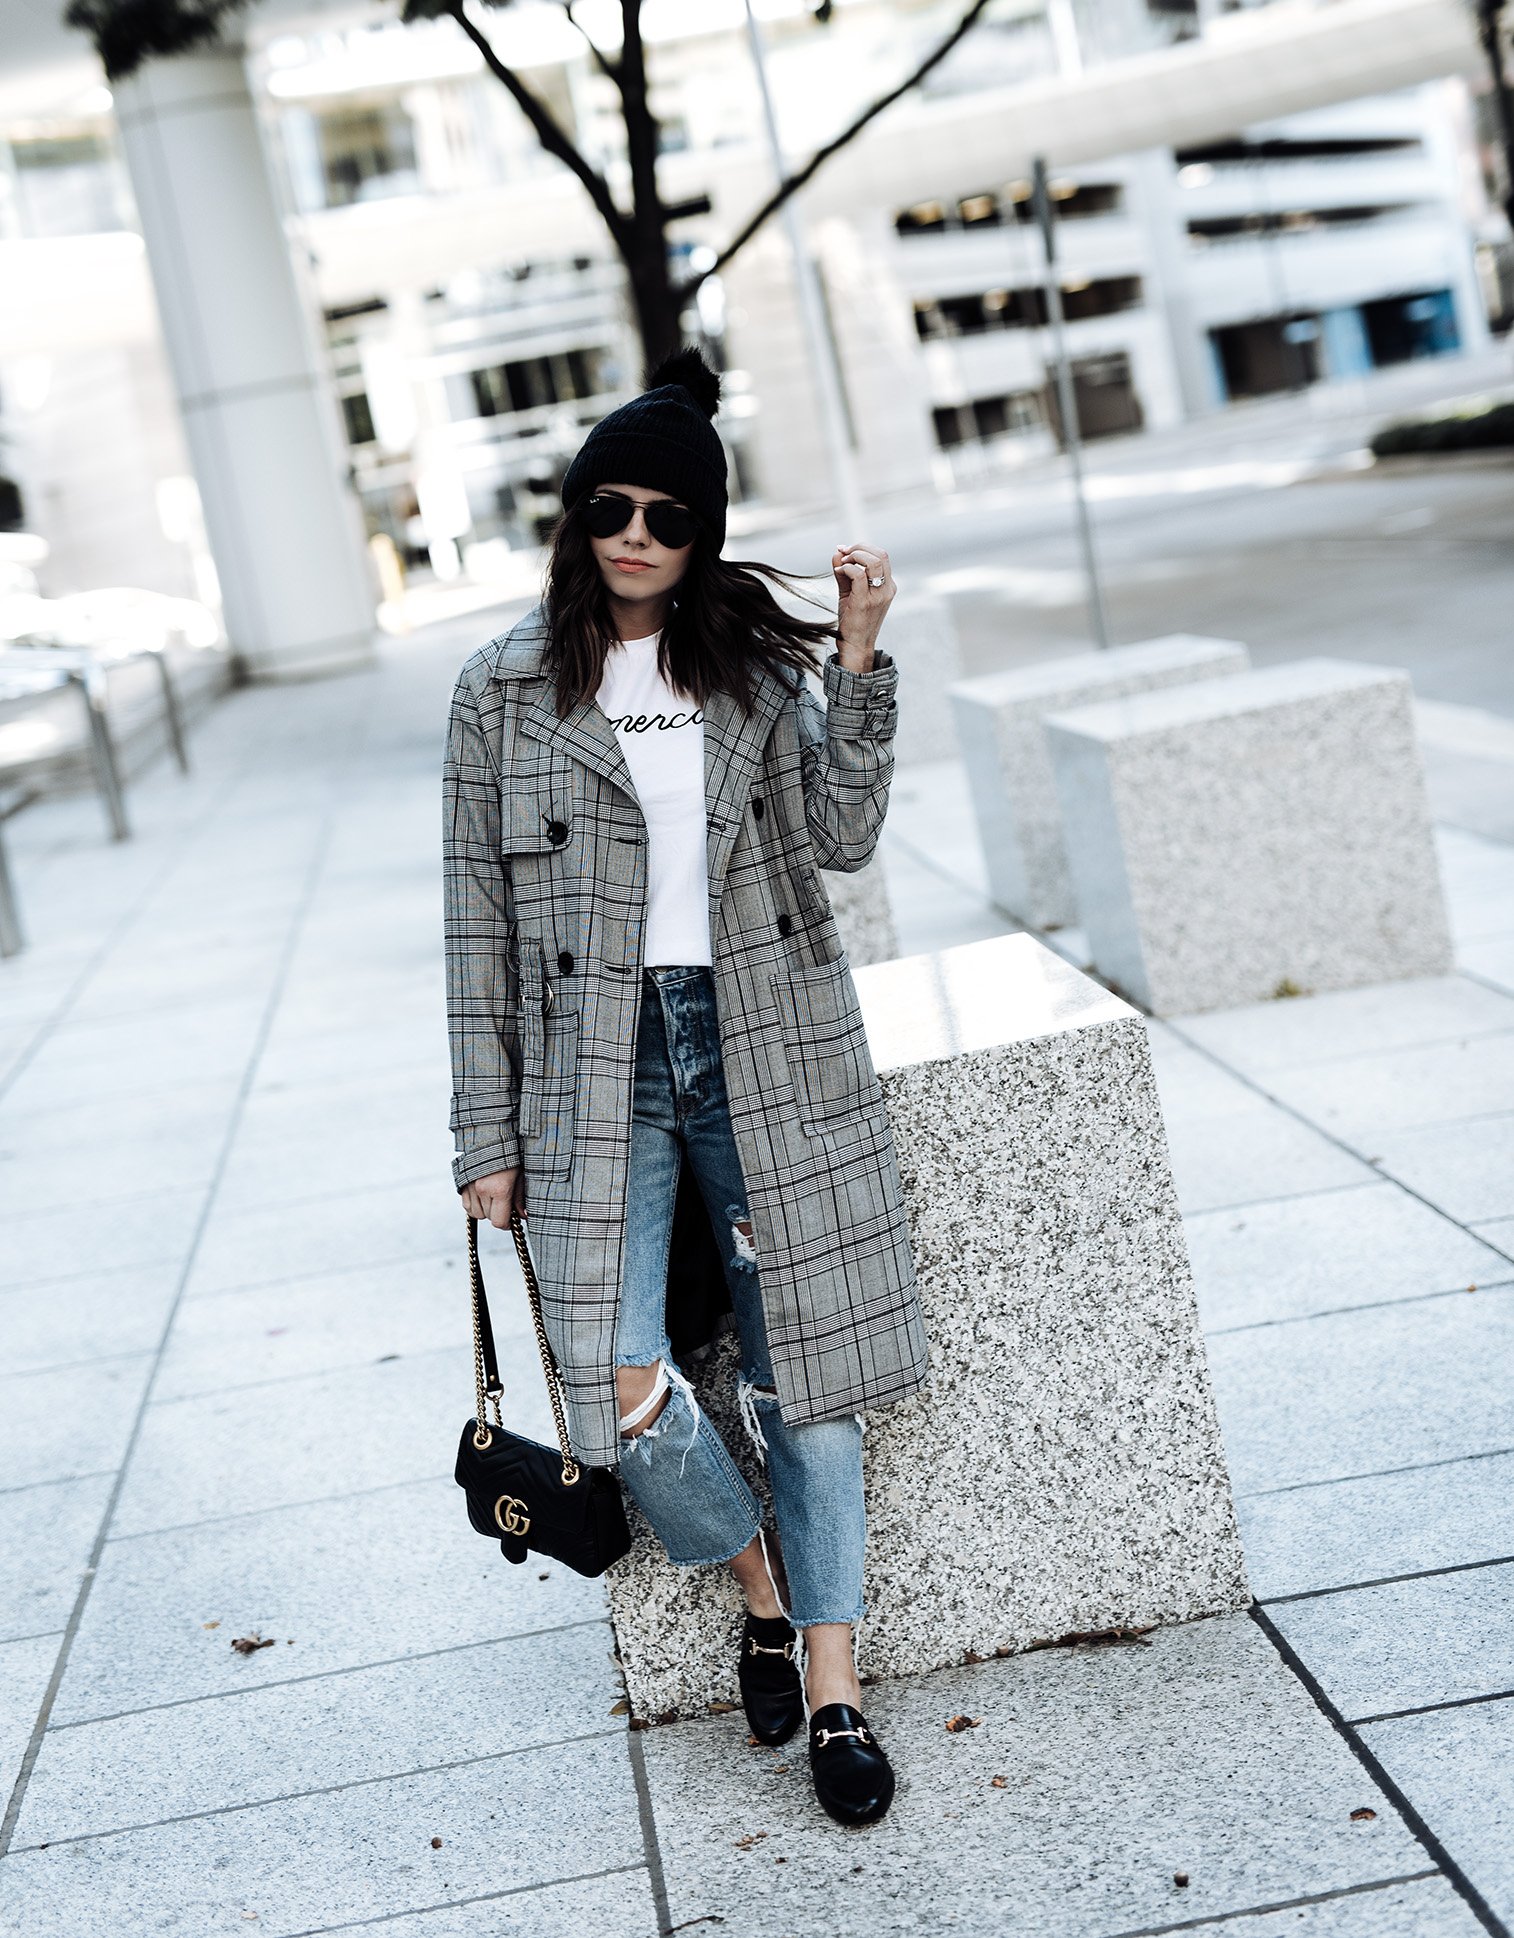 Grey Prince of Wales Checked Coat | GRLFRND X Revolve Denim | Steve Madden Kandi Mules | Merci T-shirt | Gucci Marmont Tiffany Jais fashion and lifestyle blogger of Flaunt and Center | Houston fashion blogger | Streetstyle blog | Personal style online | 3 check print pieces for under $100 | Grey Prince of Wales Checked Coat | GRLFRND X Revolve Denim | Steve Madden Kandi Mules | Merci T-shirt | Gucci Marmont #falloutfits #beanieoutfits #fallfashion2017 #streetstyle